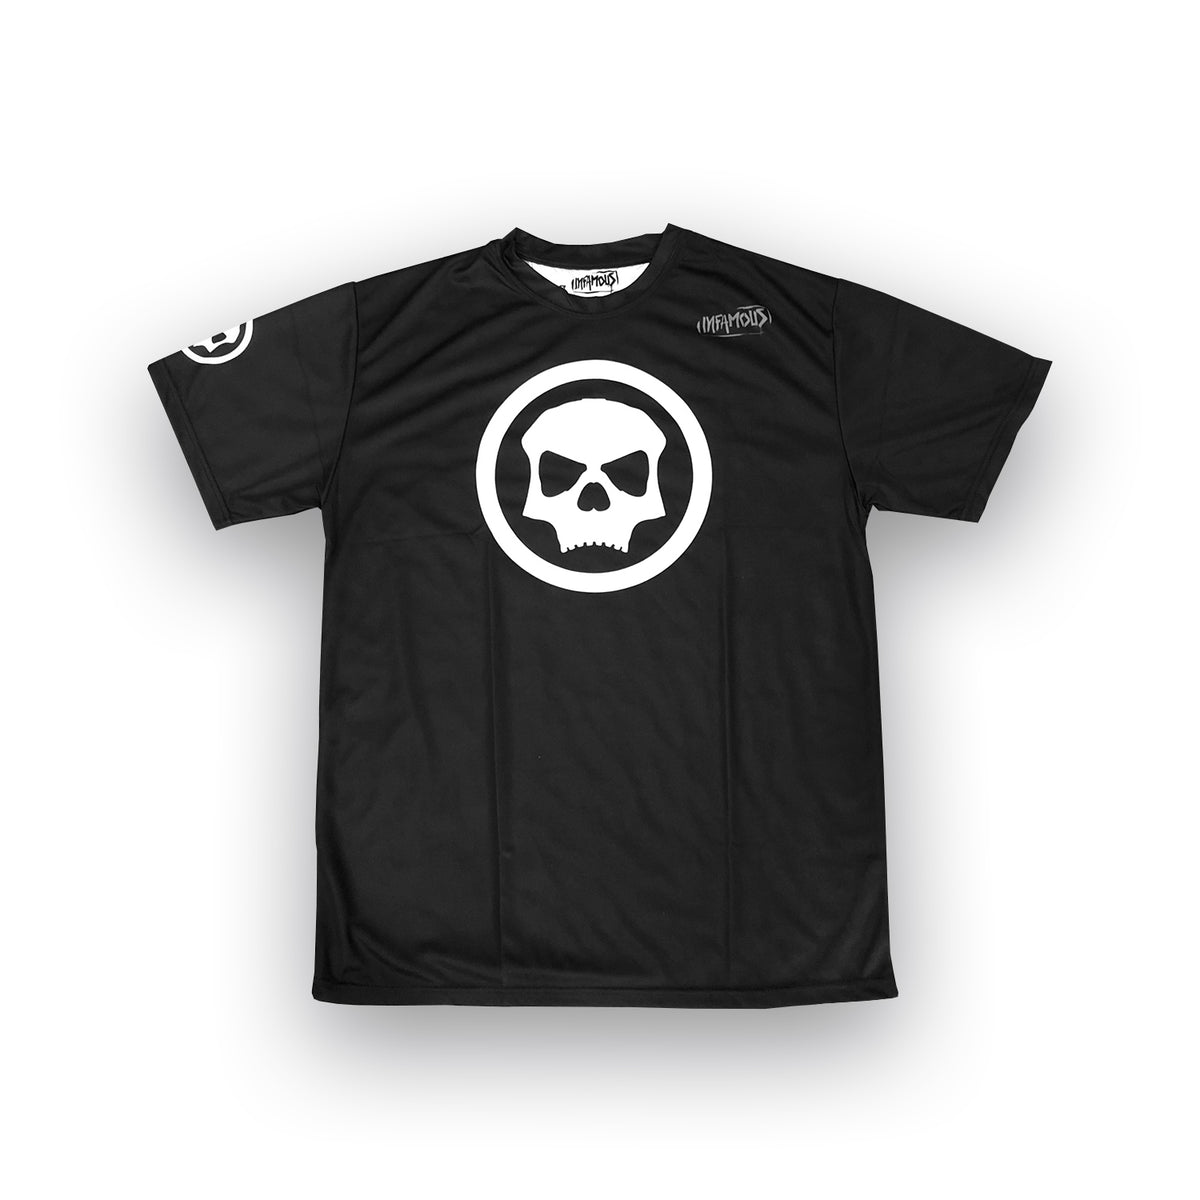 Infamous DryFit Tech T-Shirt - Loyalty Black/White